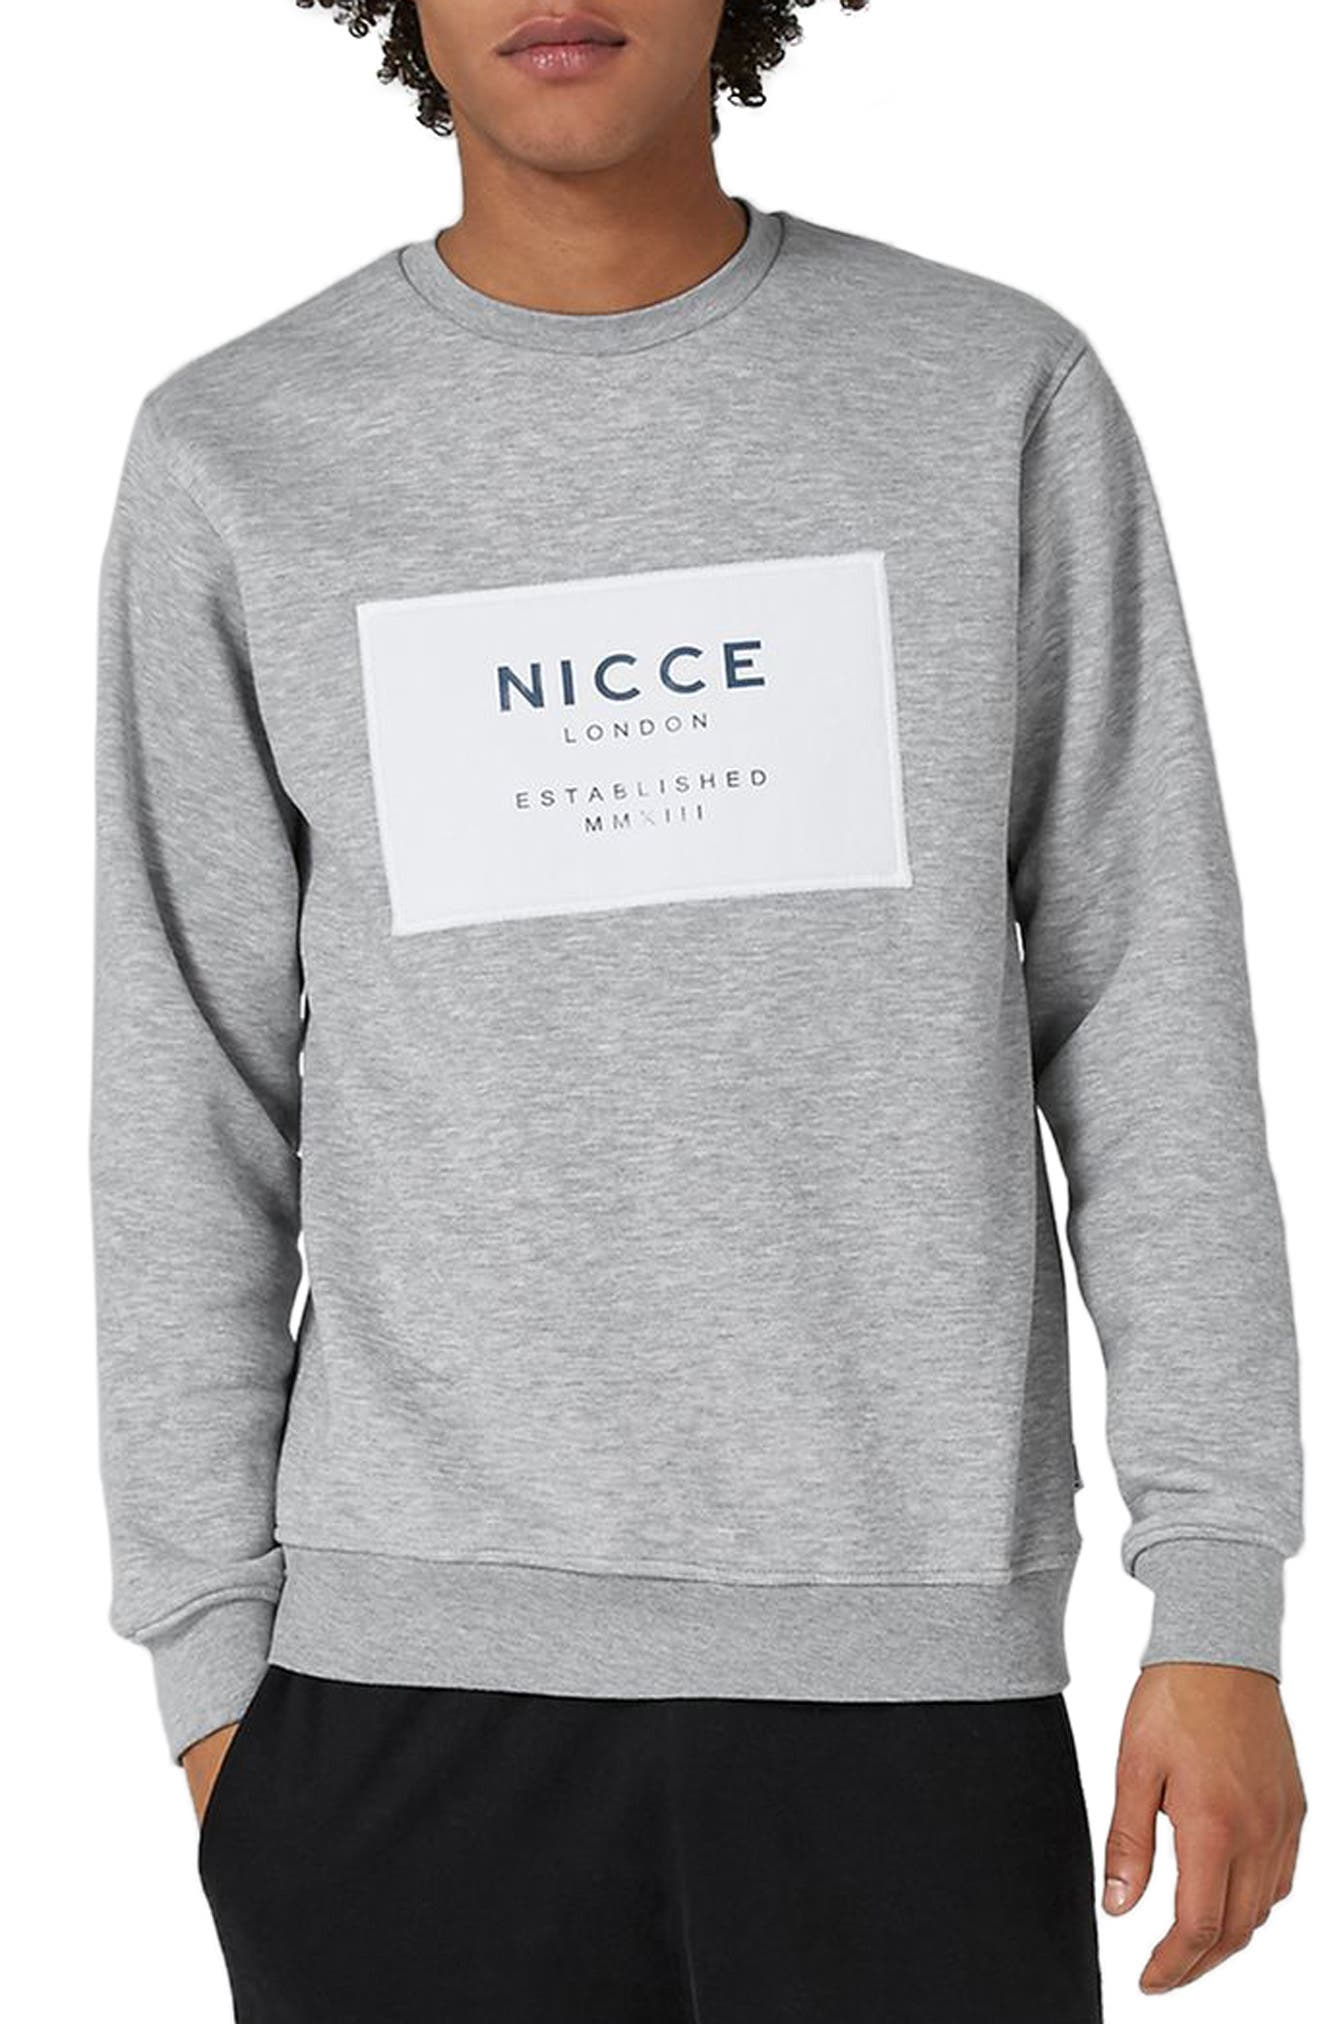 NICCE Logo Patch Sweatshirt,                             Main thumbnail 1, color,                             Grey Multi